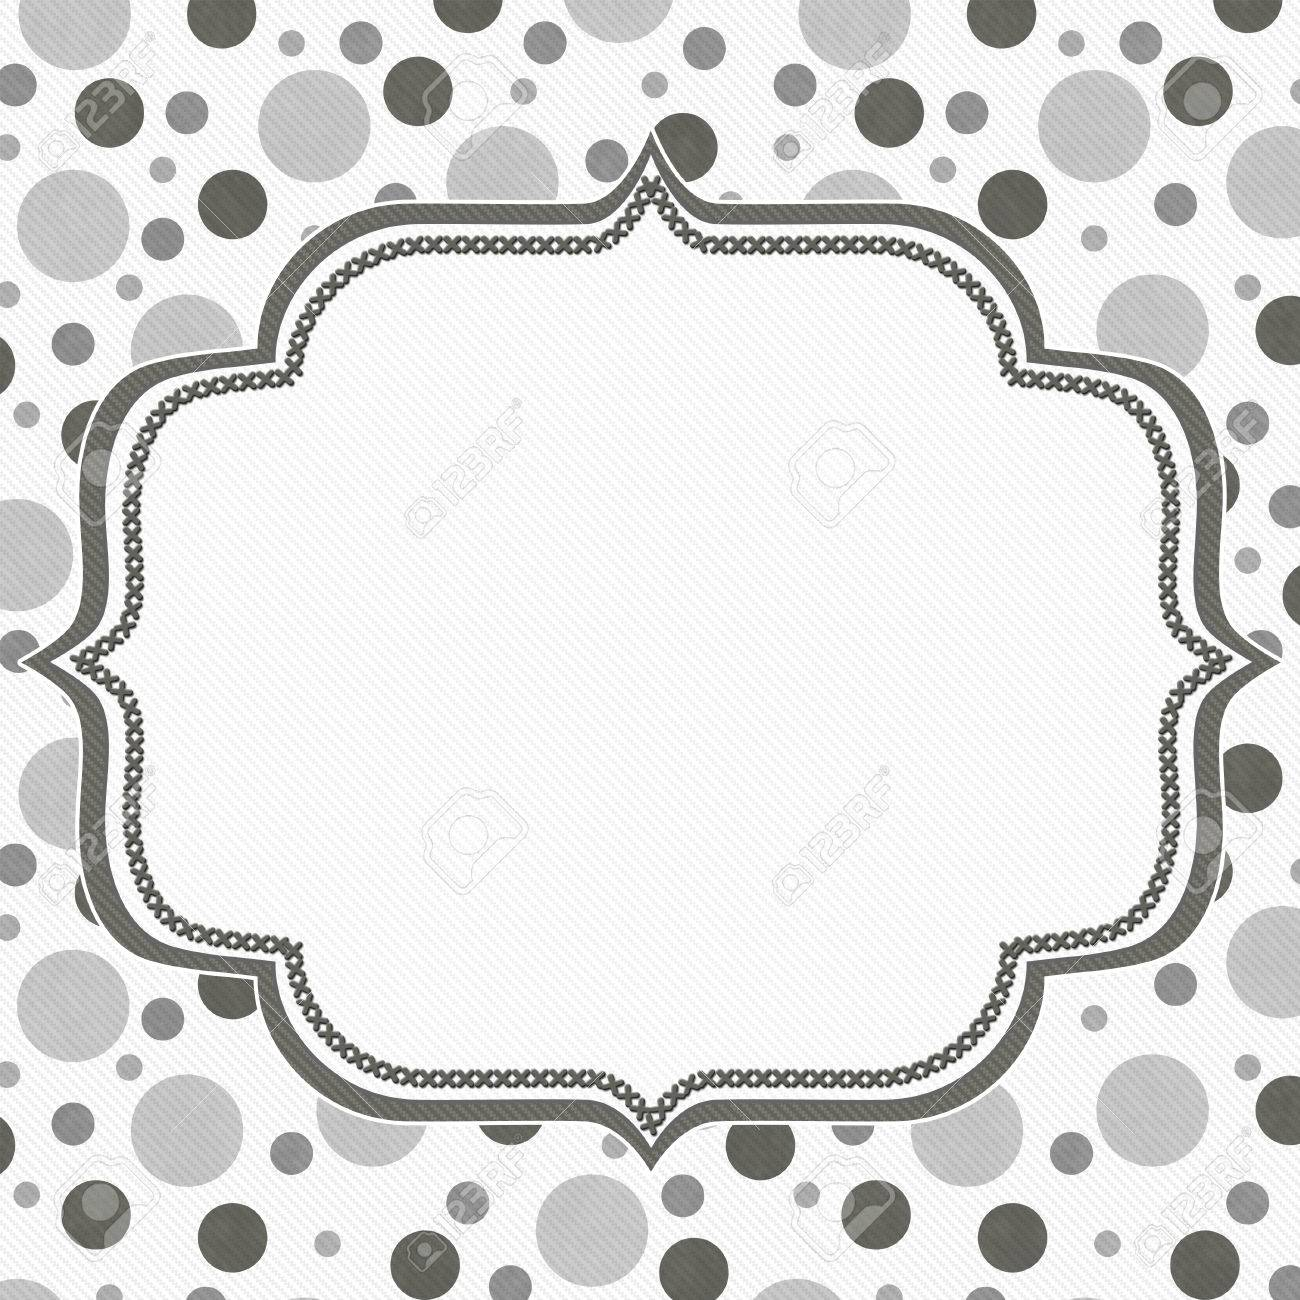 Gray And White Polka Dot Frame With Embroidery Stitches Background ...